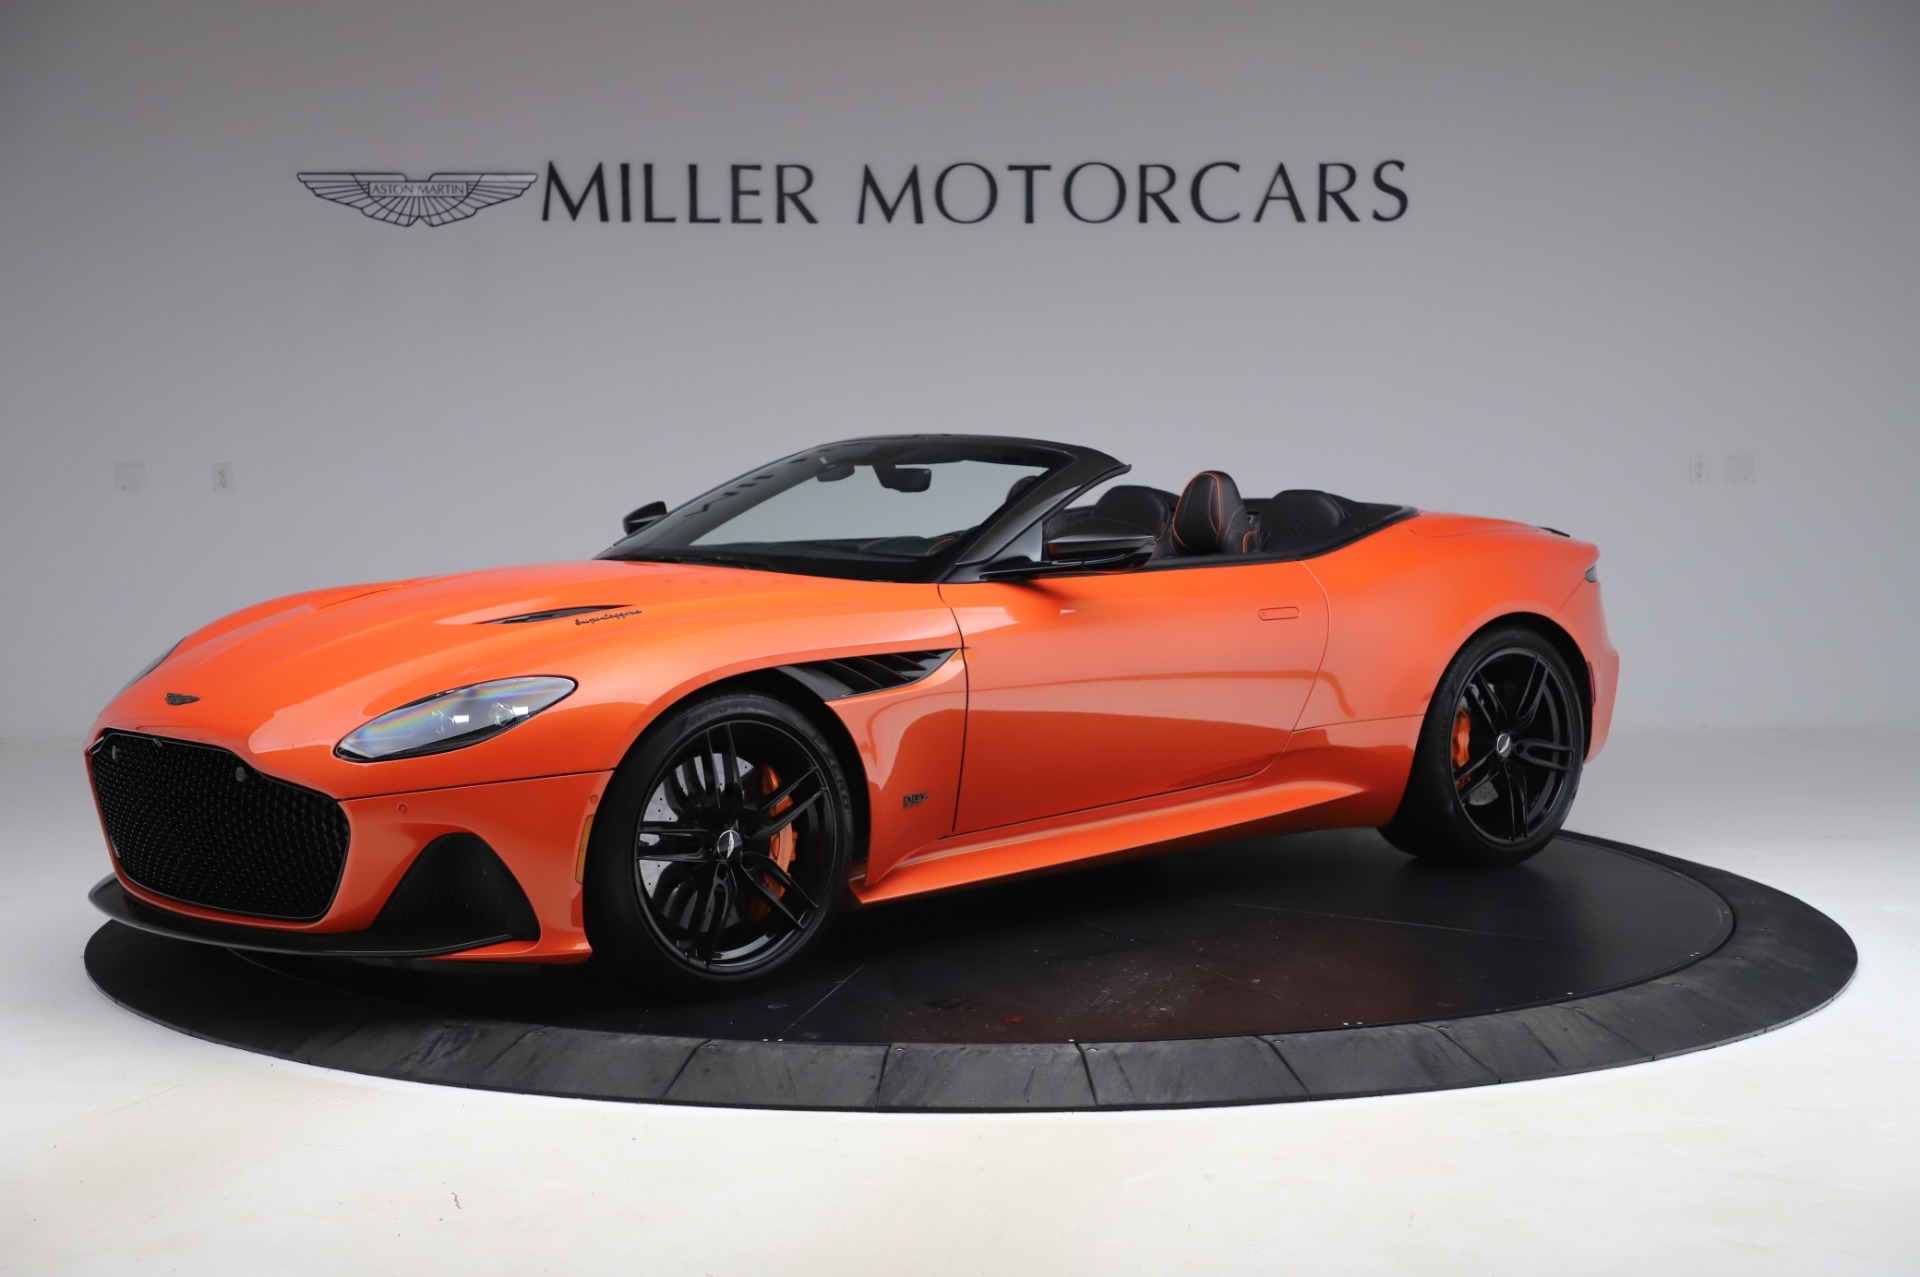 Used 2020 Aston Martin DBS Superleggera Volante for sale $339,800 at McLaren Greenwich in Greenwich CT 06830 1